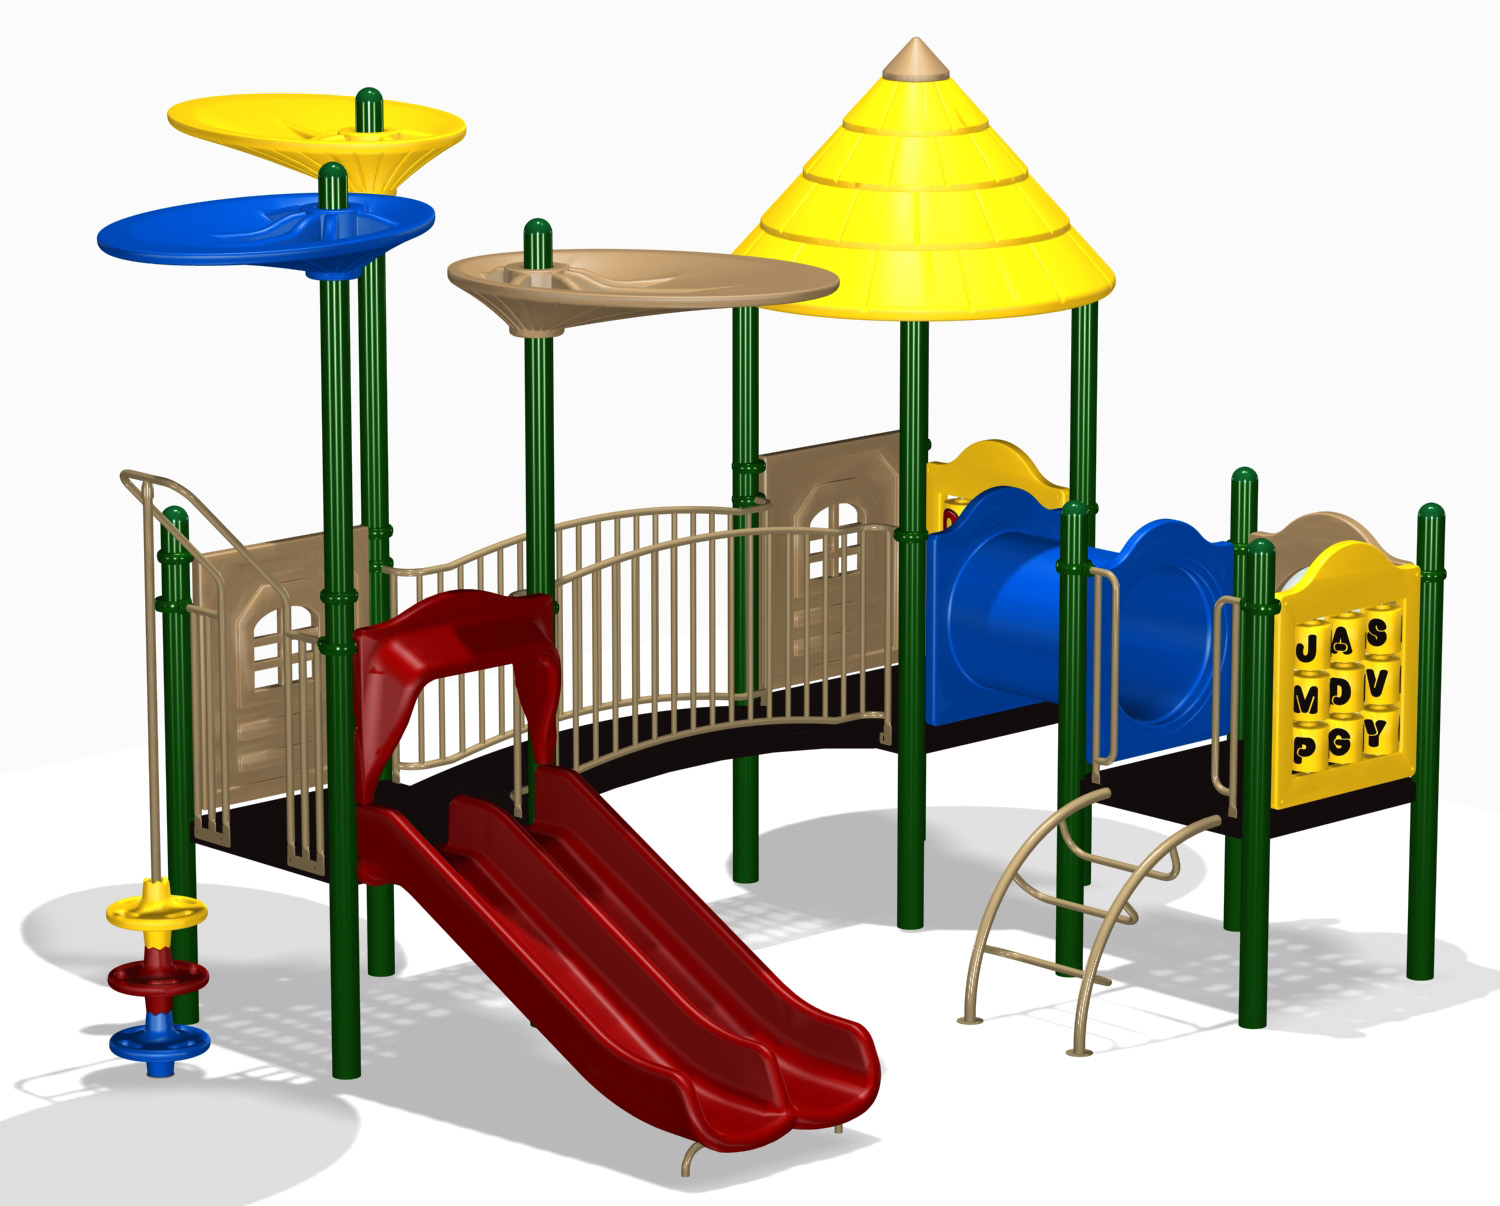 Preschool playground clipart graphic freeuse library 36+ Playground Clipart | ClipartLook graphic freeuse library